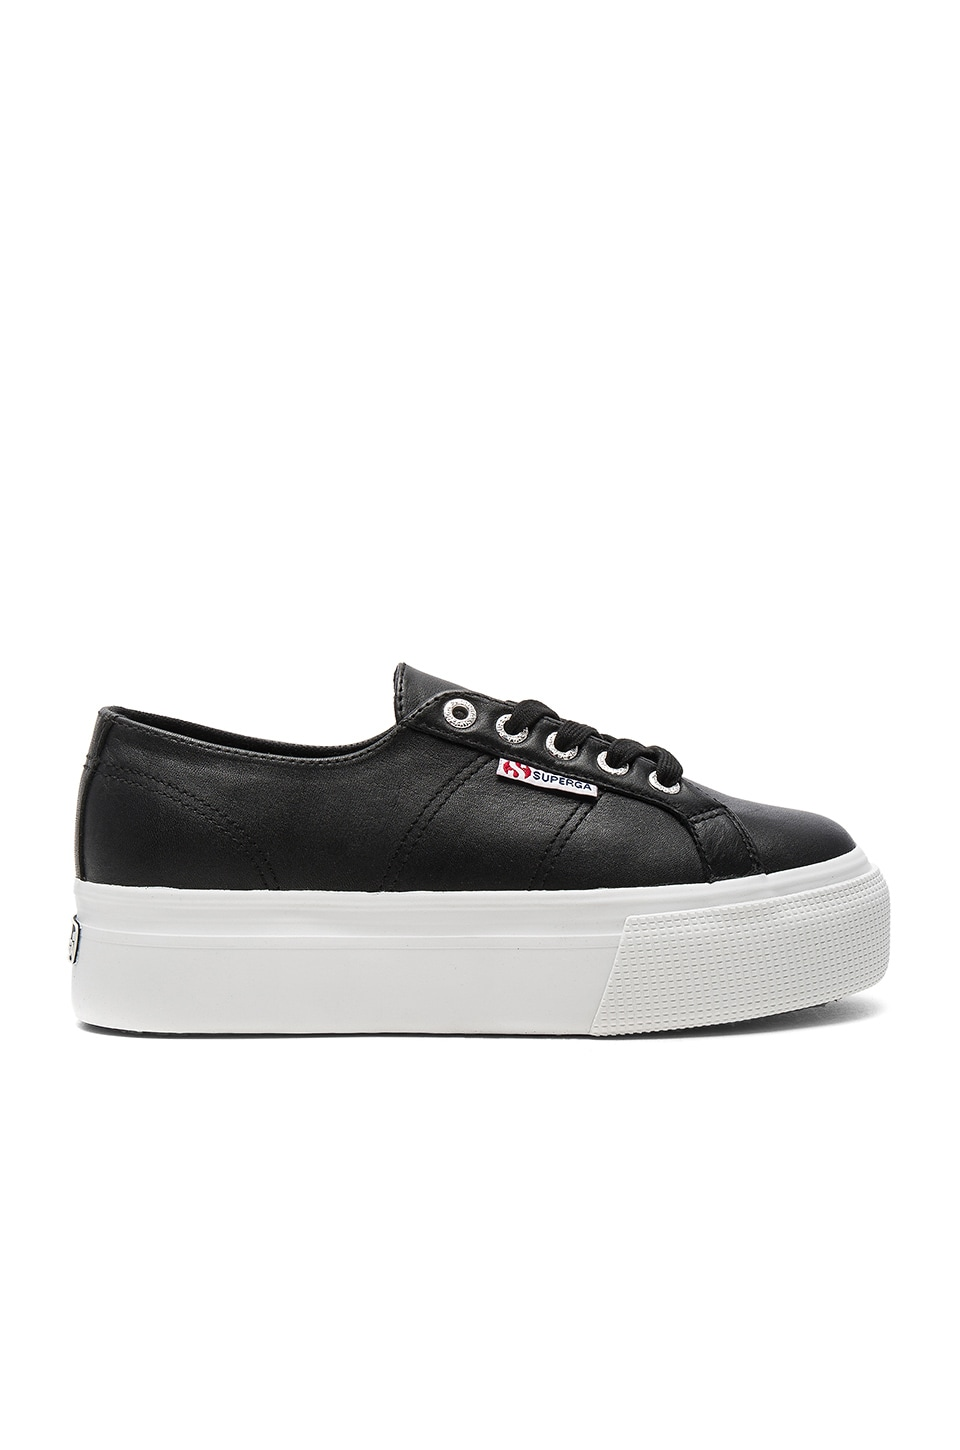 Superga 2790 Fglw Sneaker in Black